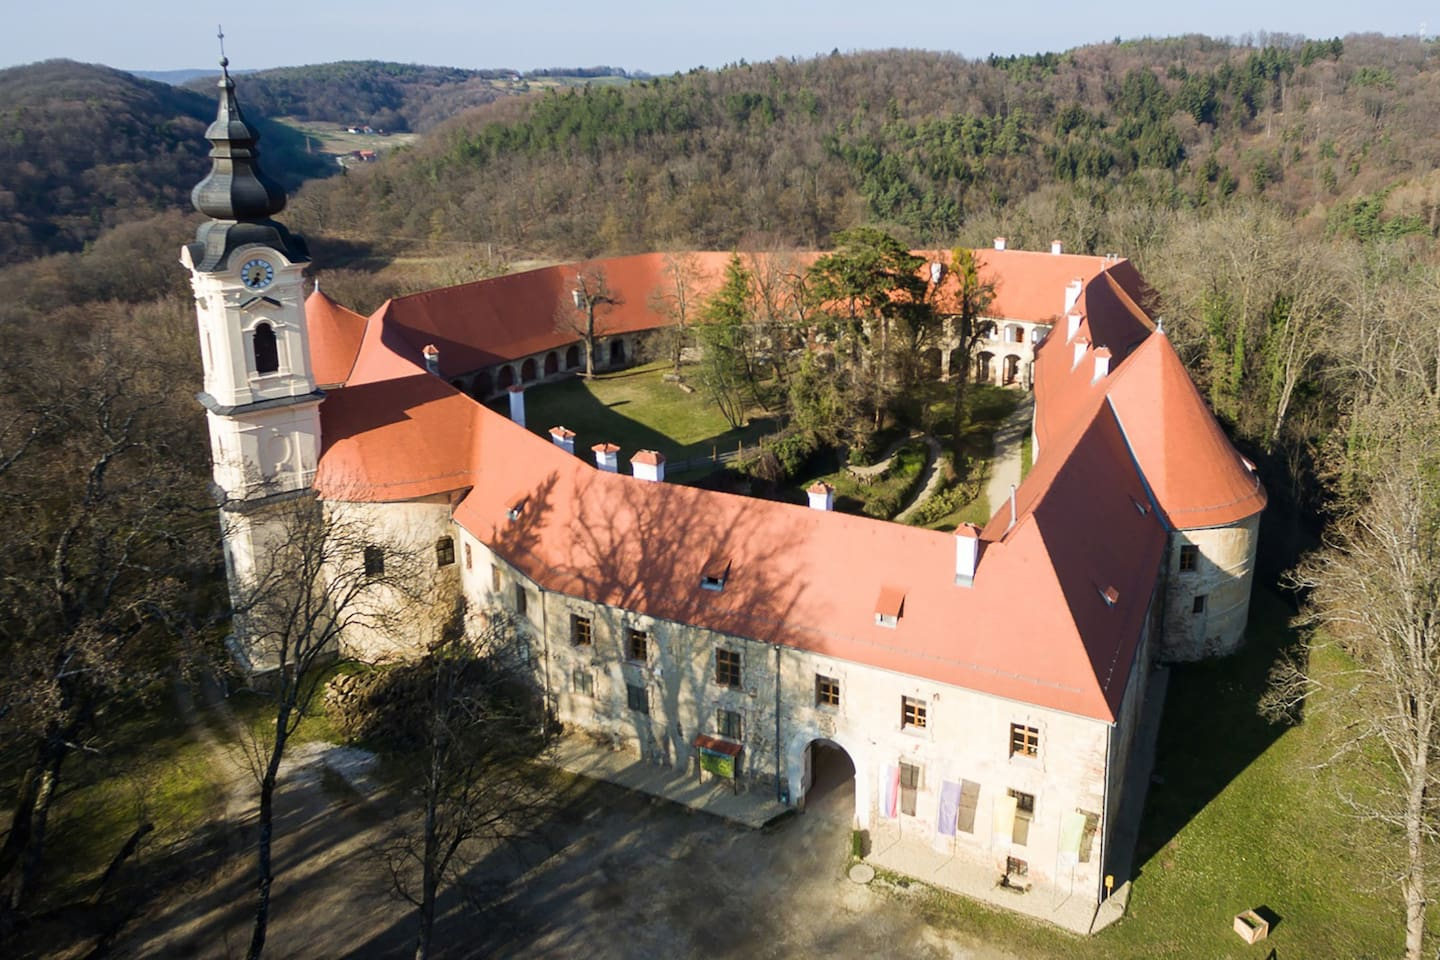 Enjoy the experience of the comfort of Castle in the centuries-old manor on the top of volcanic rocks, surrounded by centuries-old trees in the castle park.